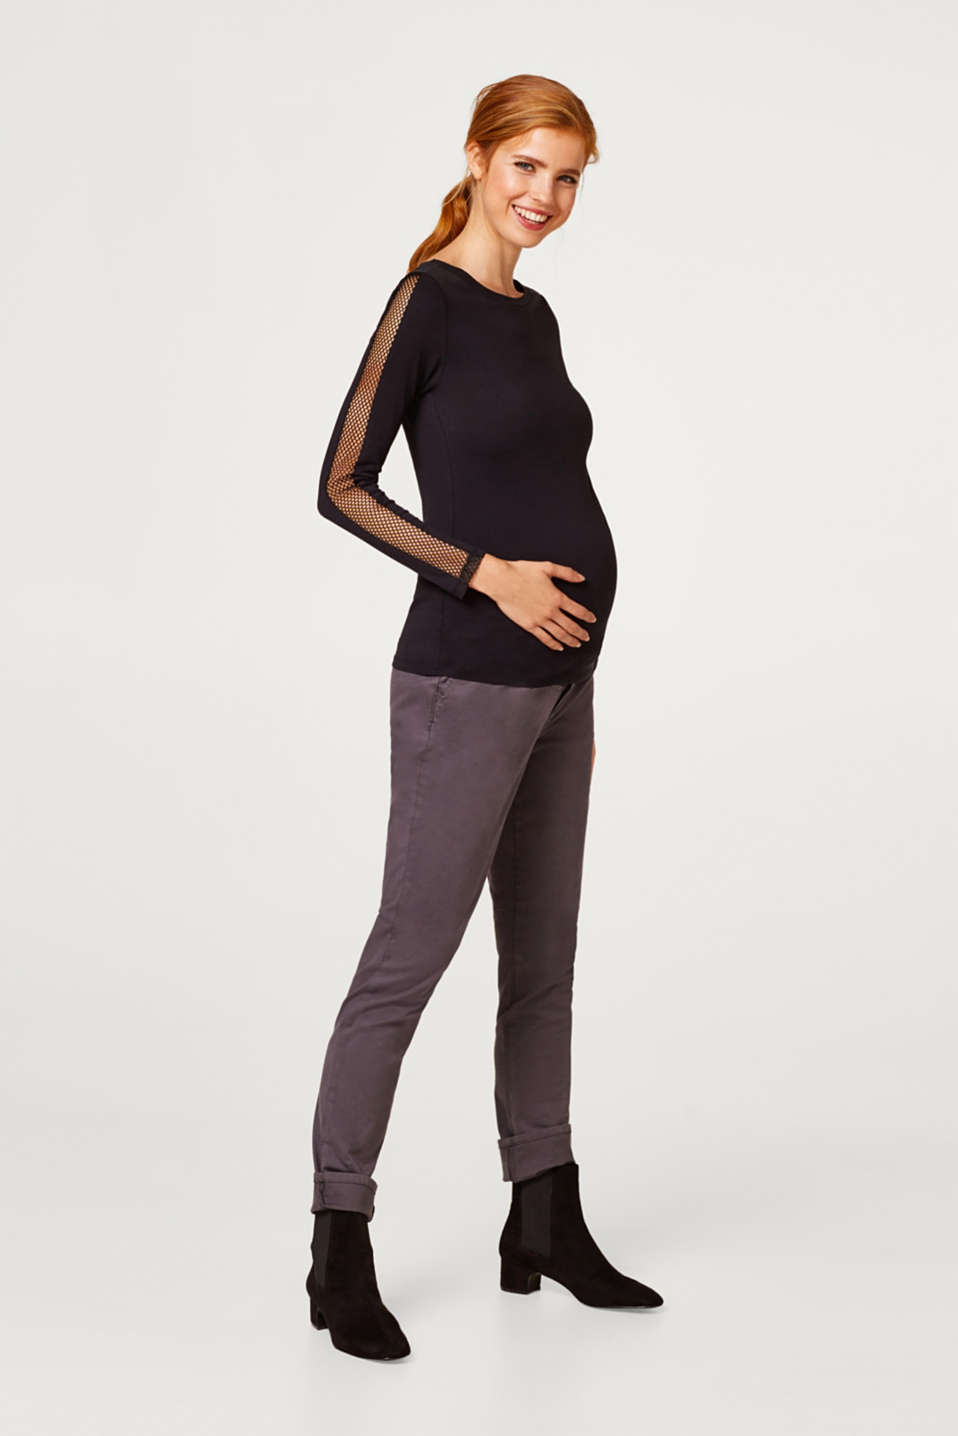 Esprit - Basic stretch trousers, over-bump waistband